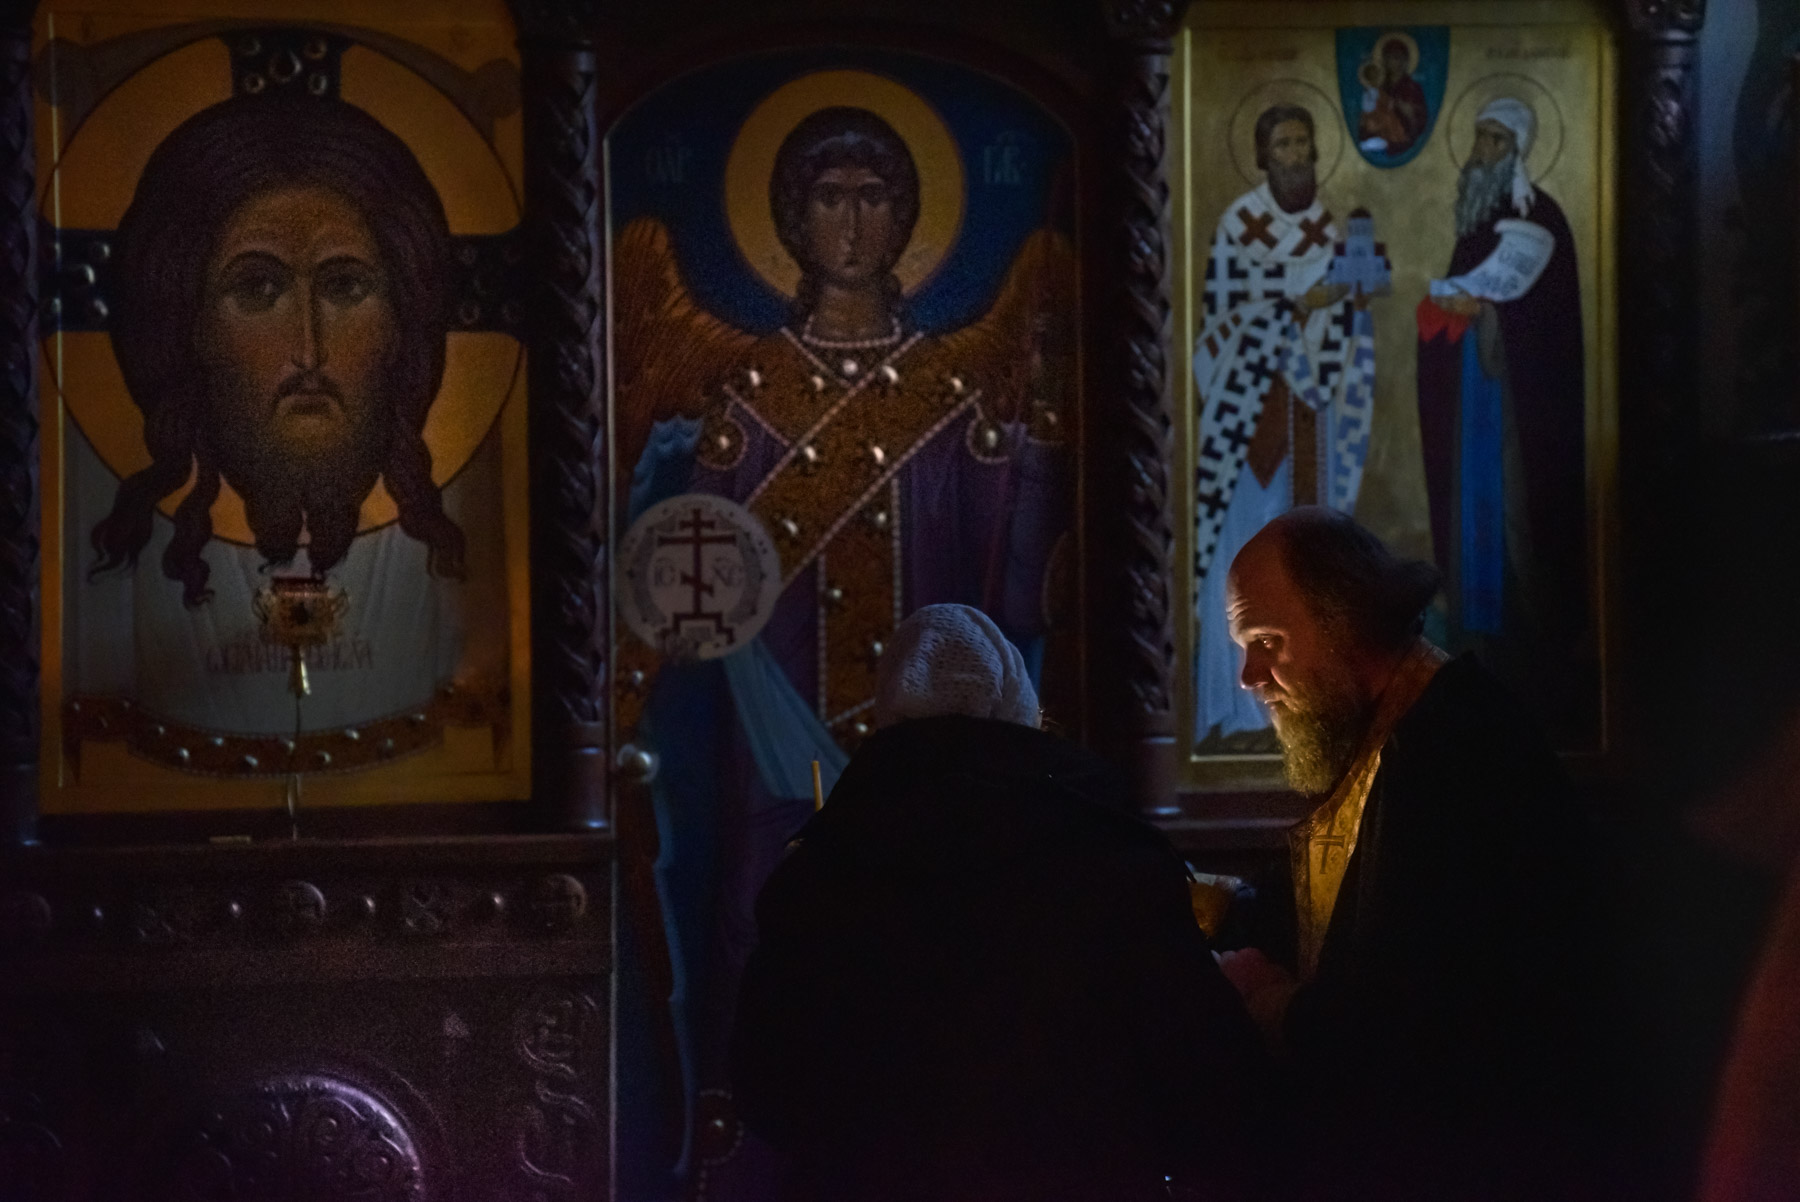 photos of orthodox christmas 0010 1